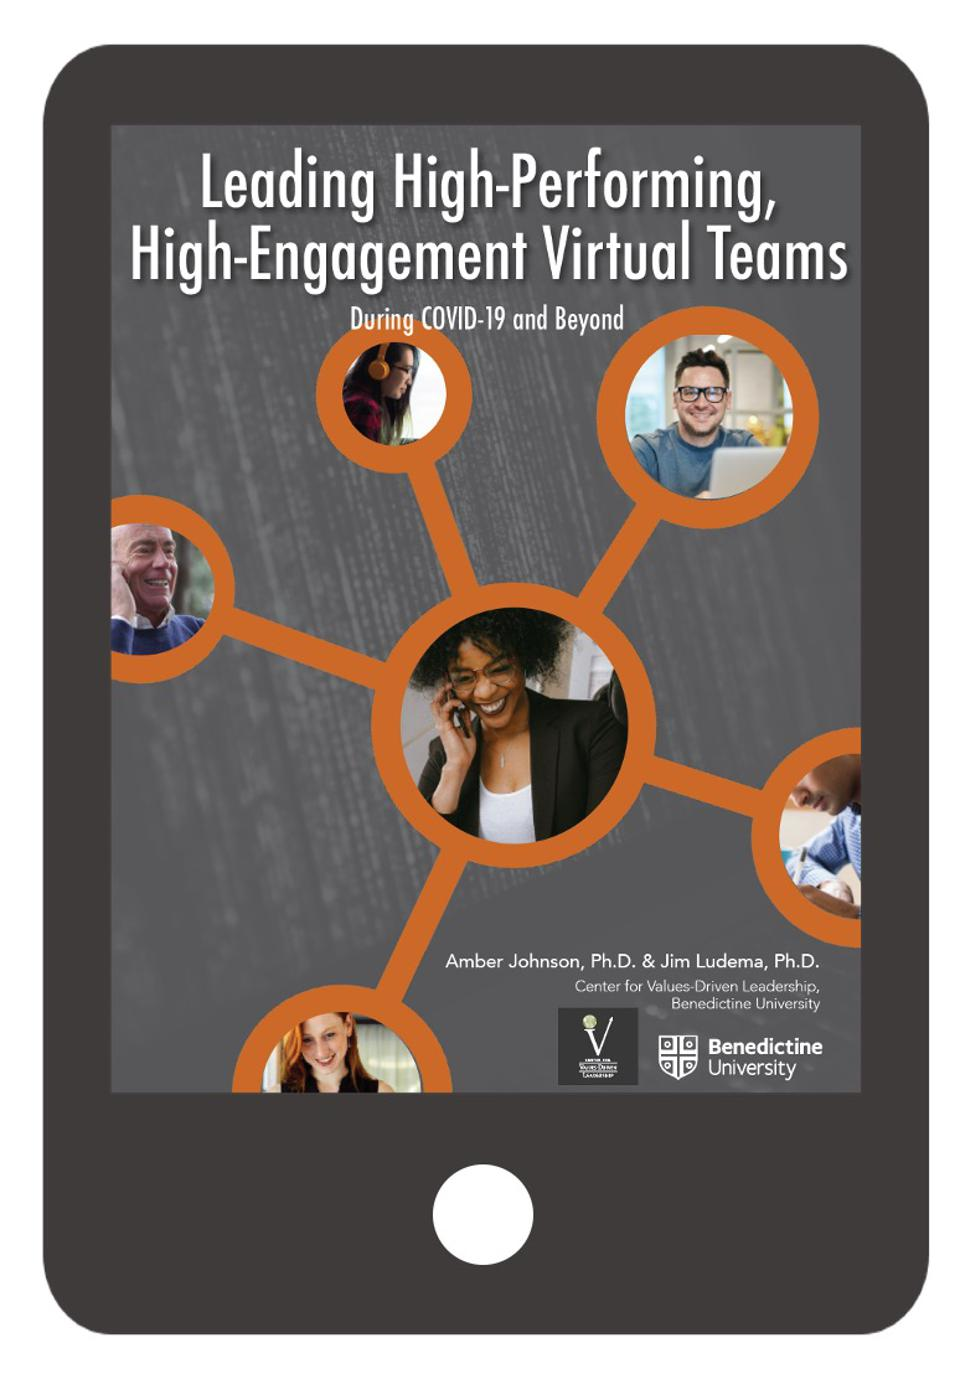 Image of an ebook for virtual team leaders